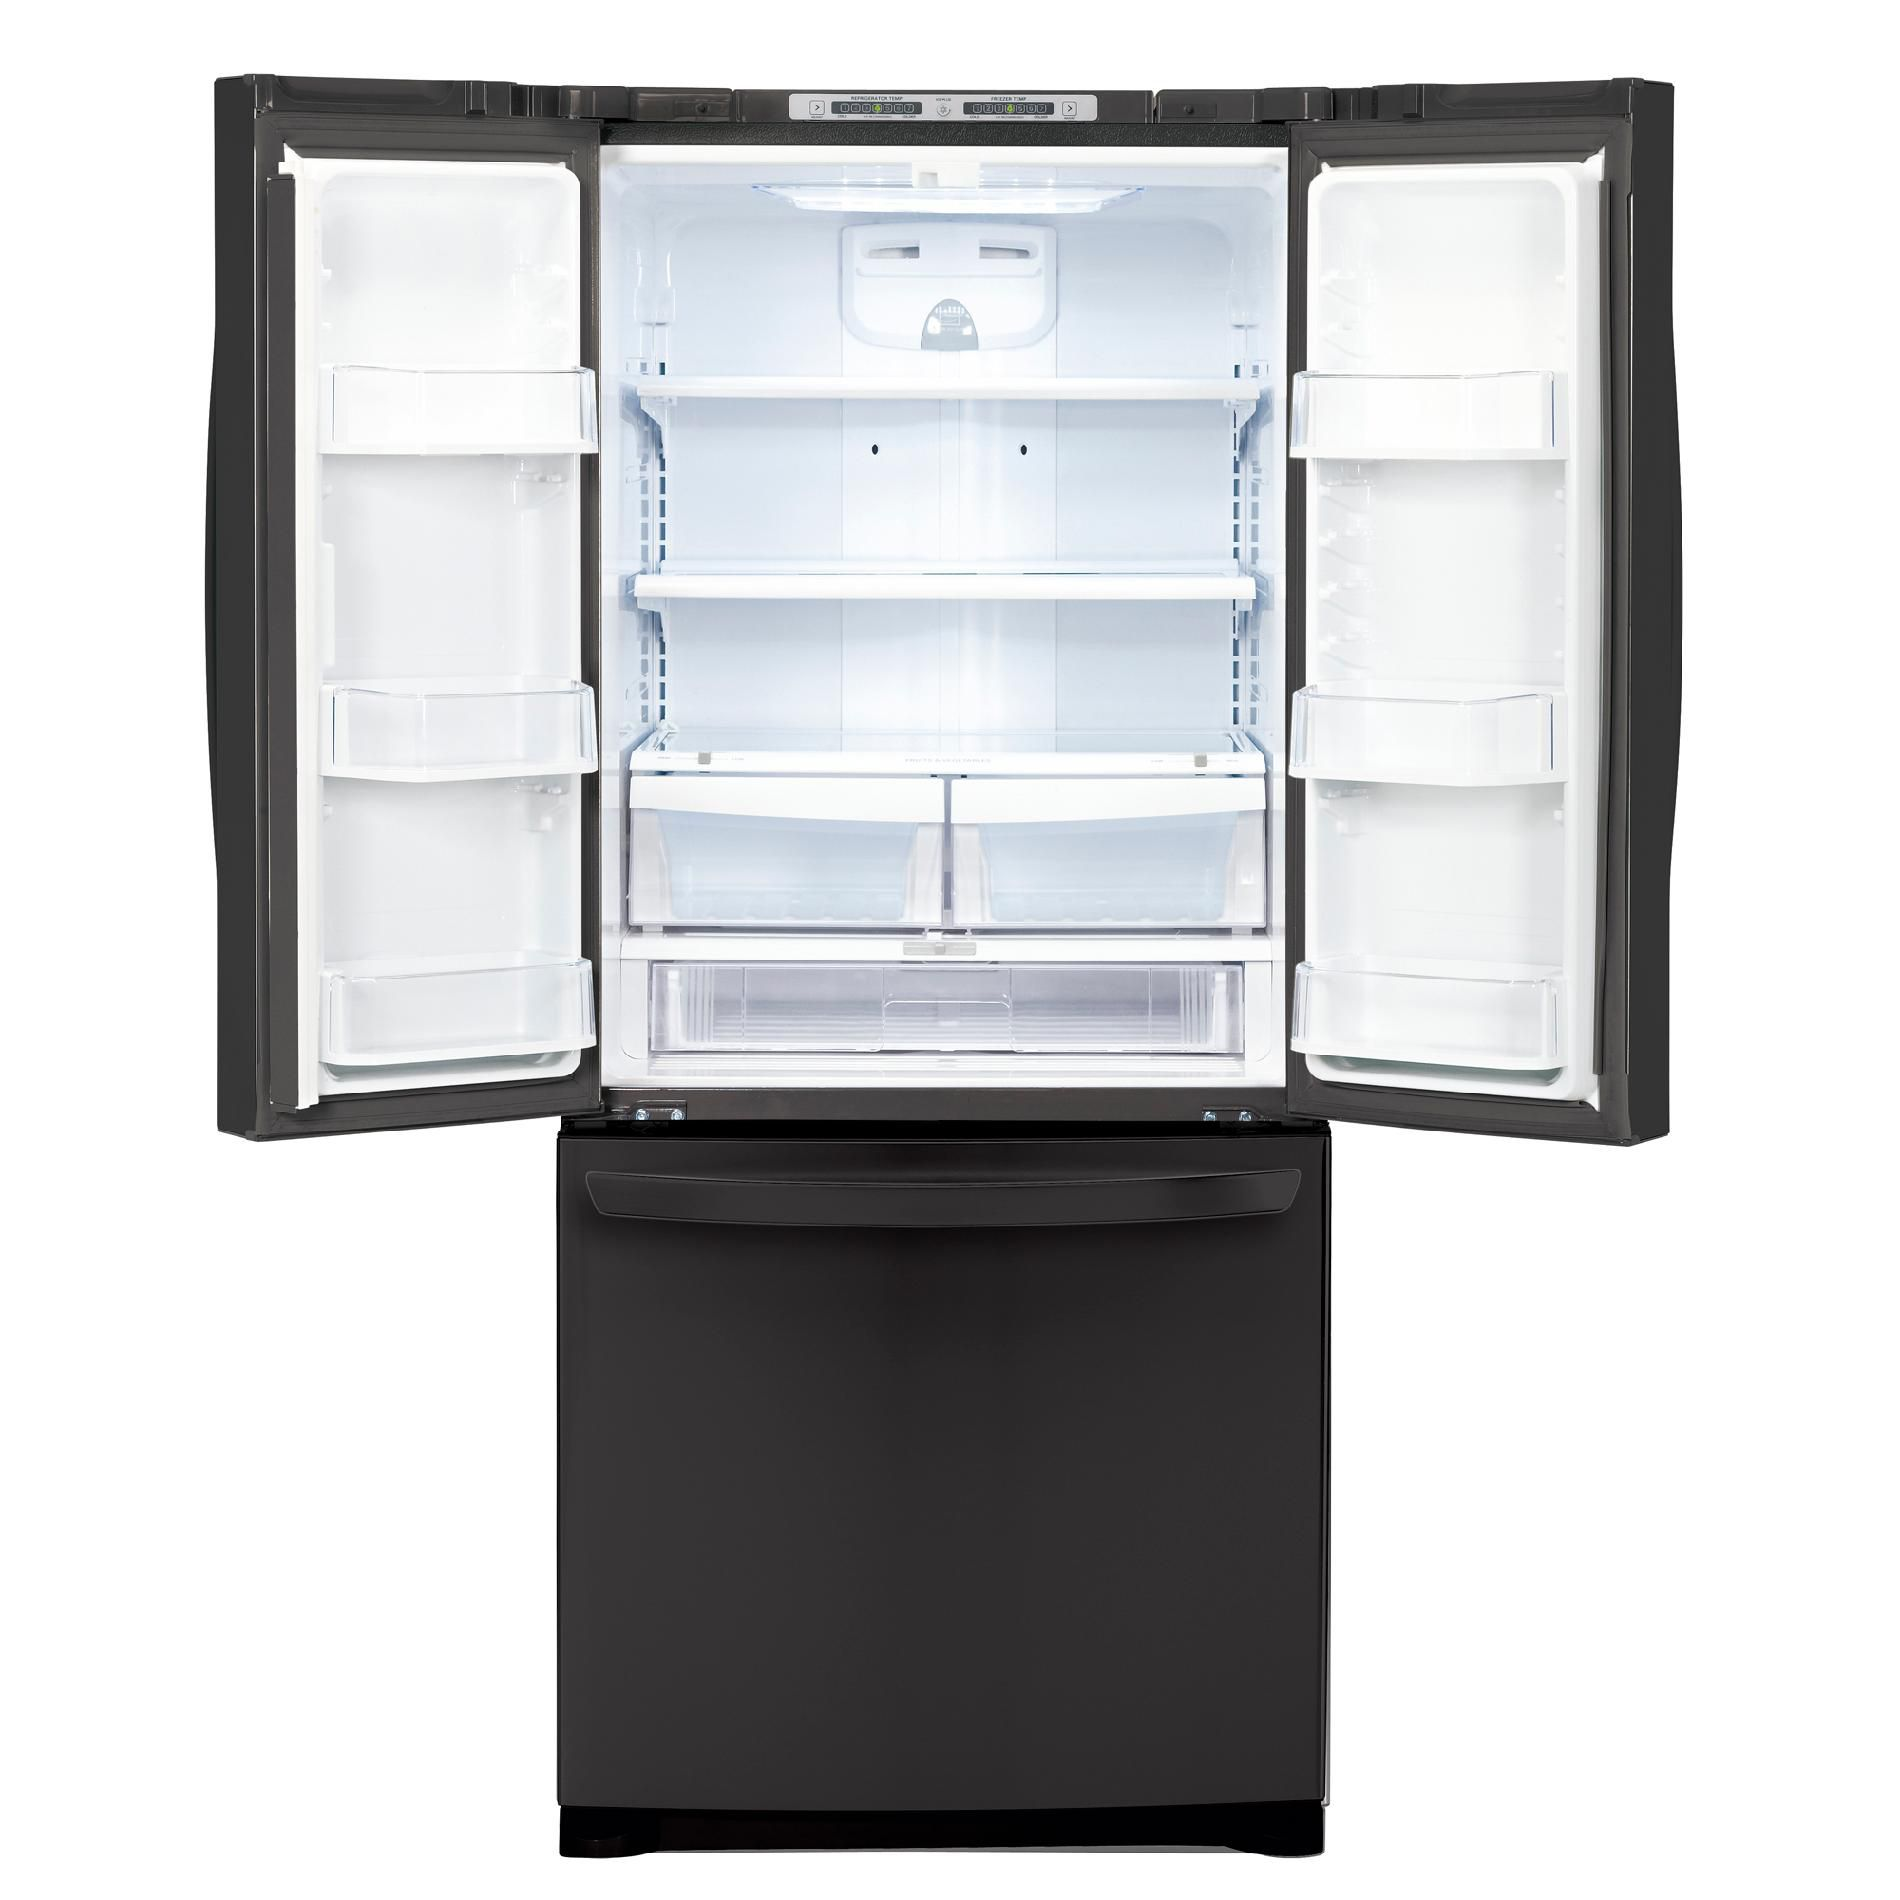 LG 19.7 cu. ft. French-Door Bottom-Freezer Refrigerator, Black (LFC20770SB)